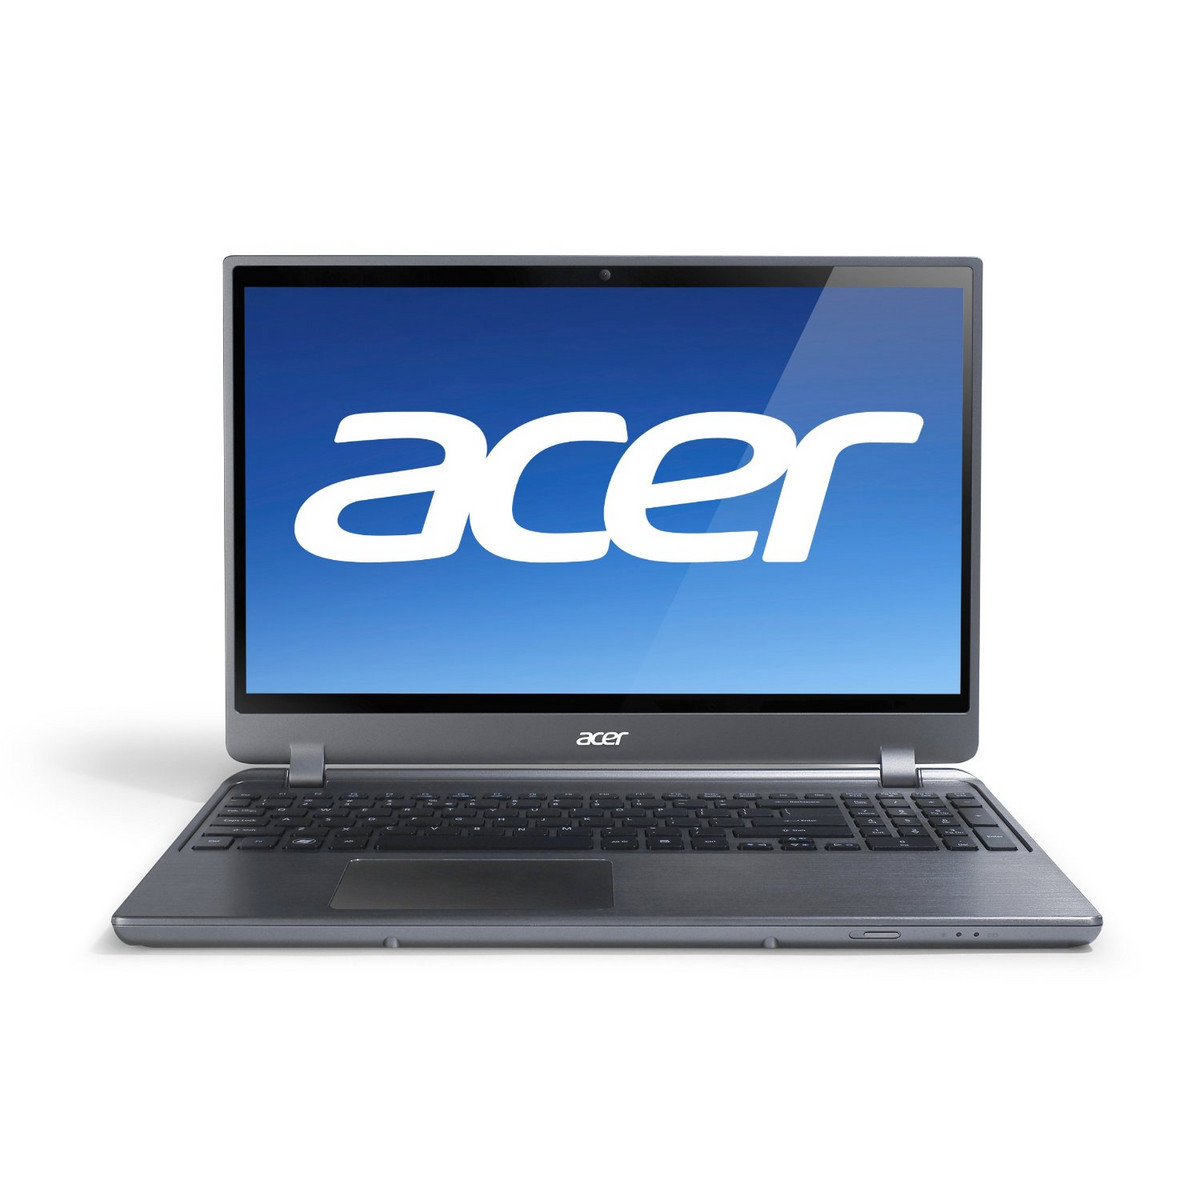 ACER ASPIRE M5 SERIES Z09 BAIXAR DRIVERS FOR WINDOWS